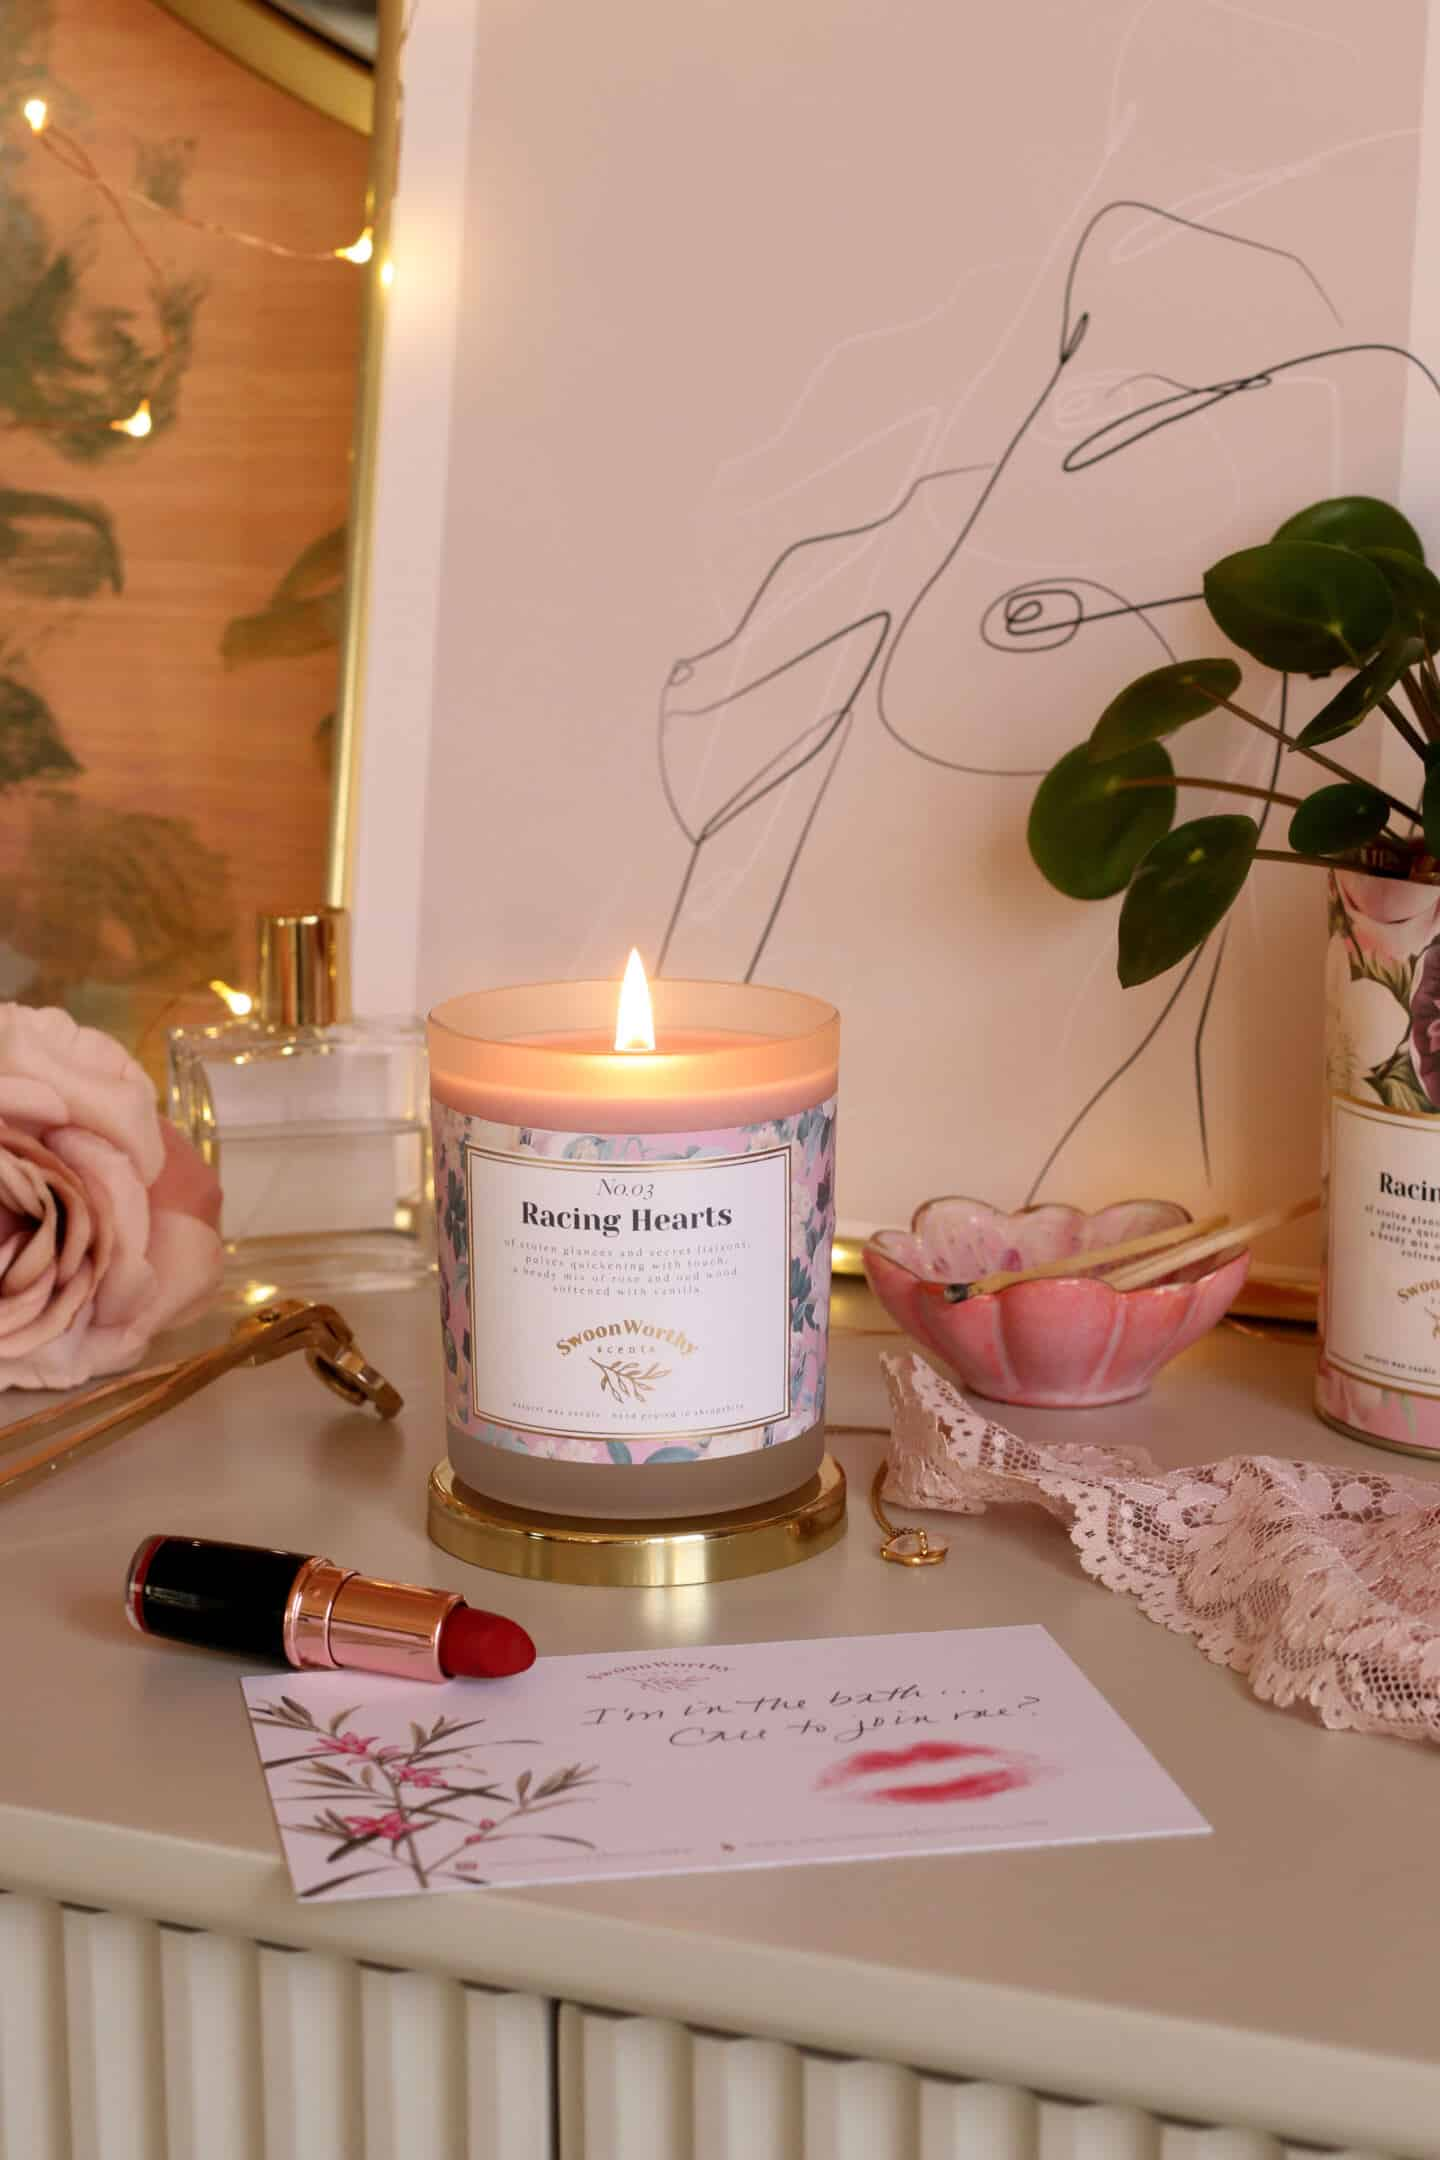 Racing Hearts, luxury eco-conscious scented candles by Swoon Worthy Scents on a chest of drawers in front of artwork and a bottle of perfume.